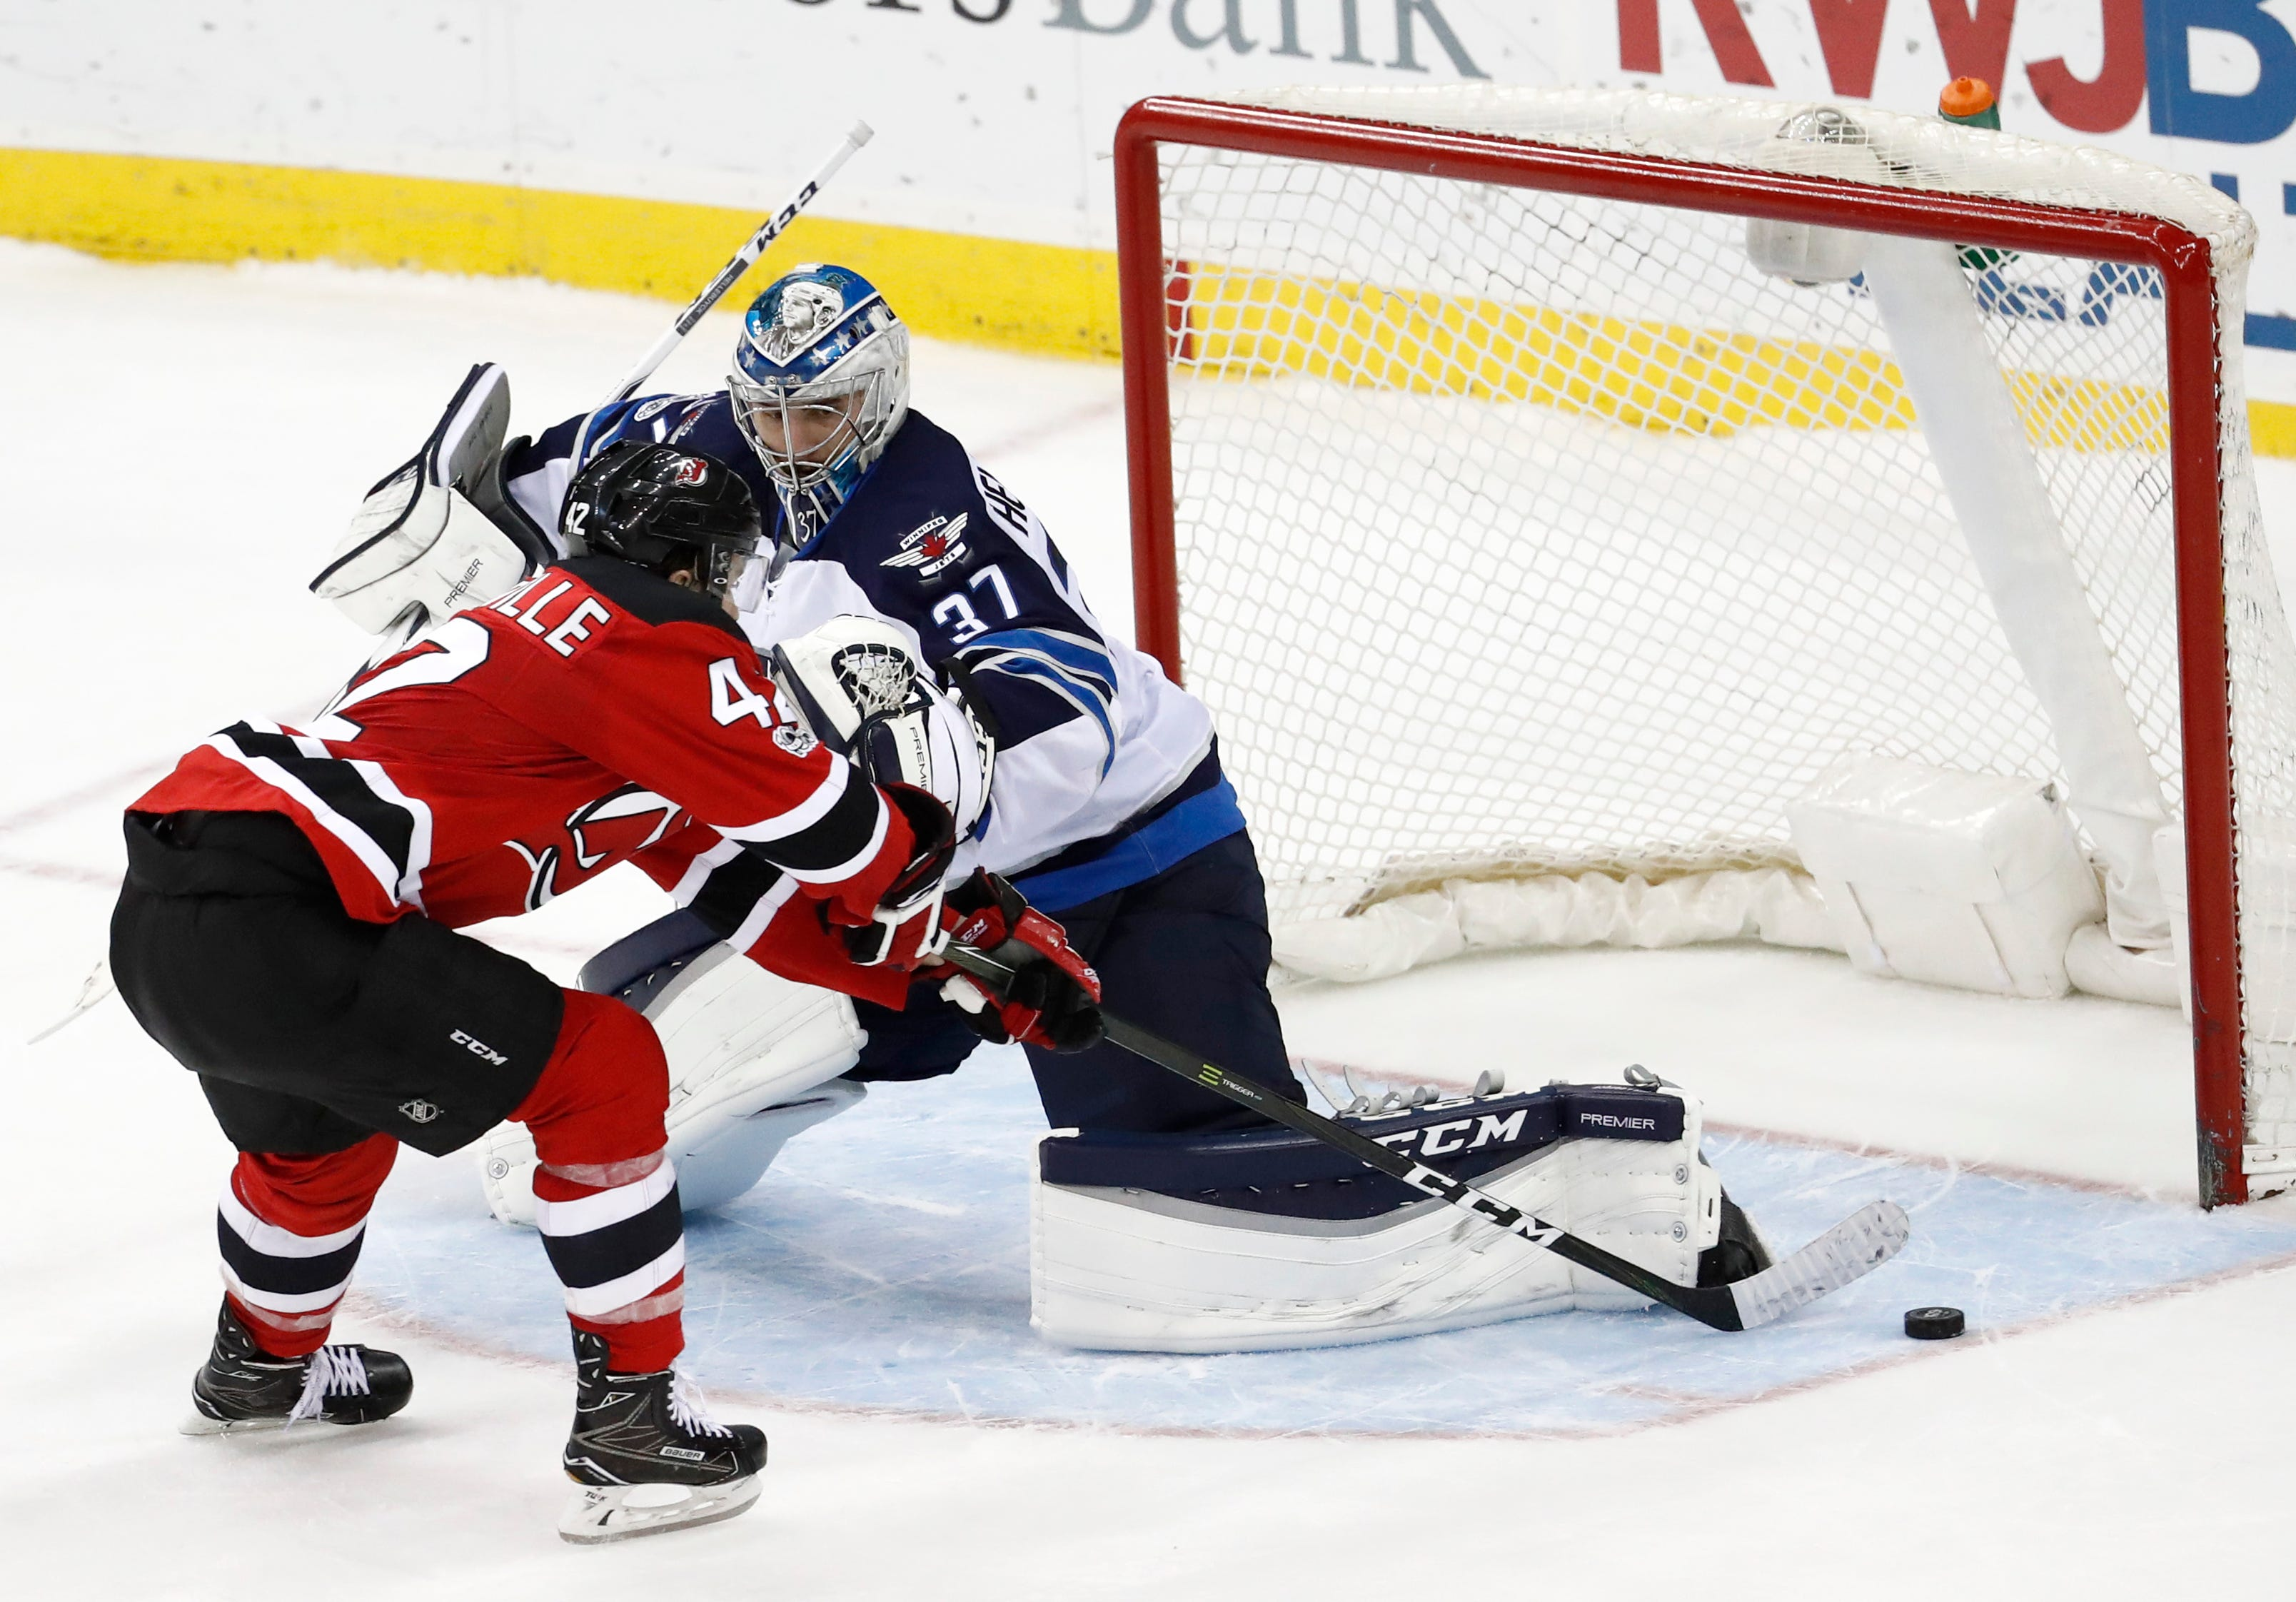 Jets 4, Devils 3 (SO): Devs get goals, can't hold lead